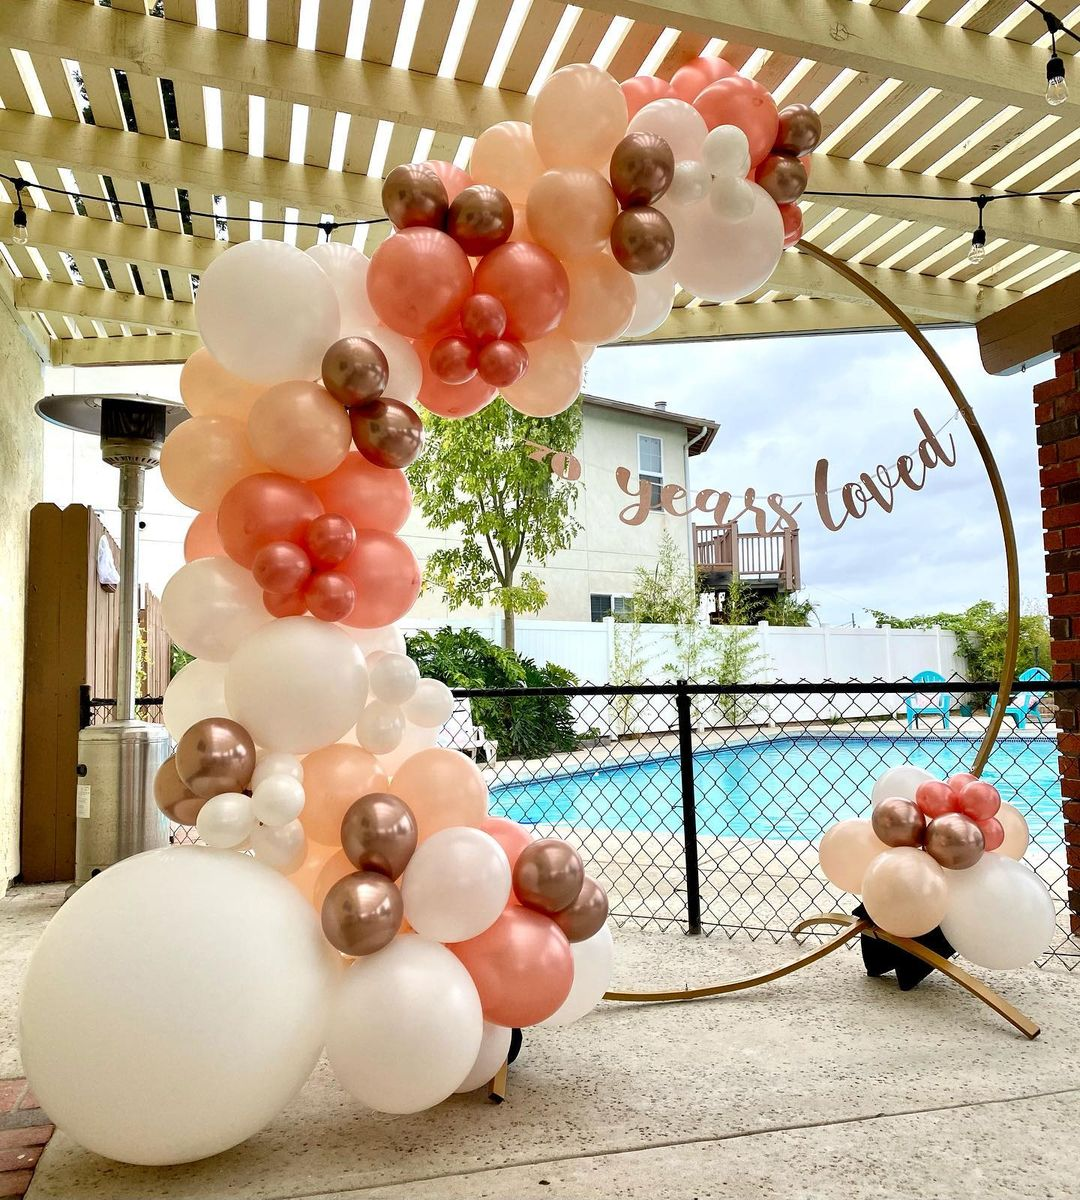 Gold Circle with Balloons Rental in San DIego for Weddings, Birthdays, Gender Reveals, Baby Showers, and Special Occasions